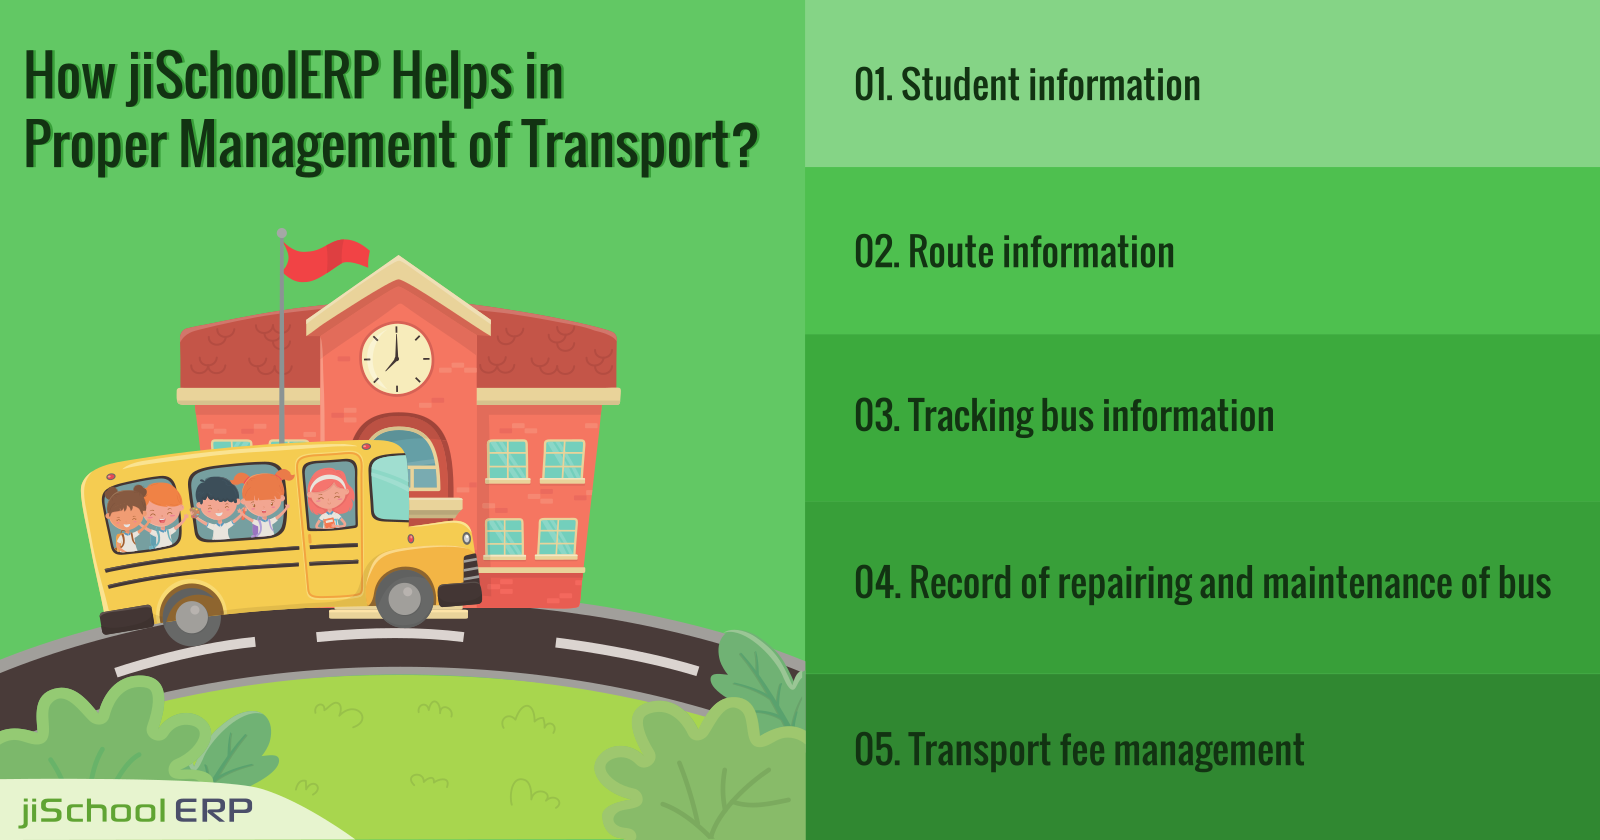 How jiSchoolERP Helps in Proper Management of Transport?